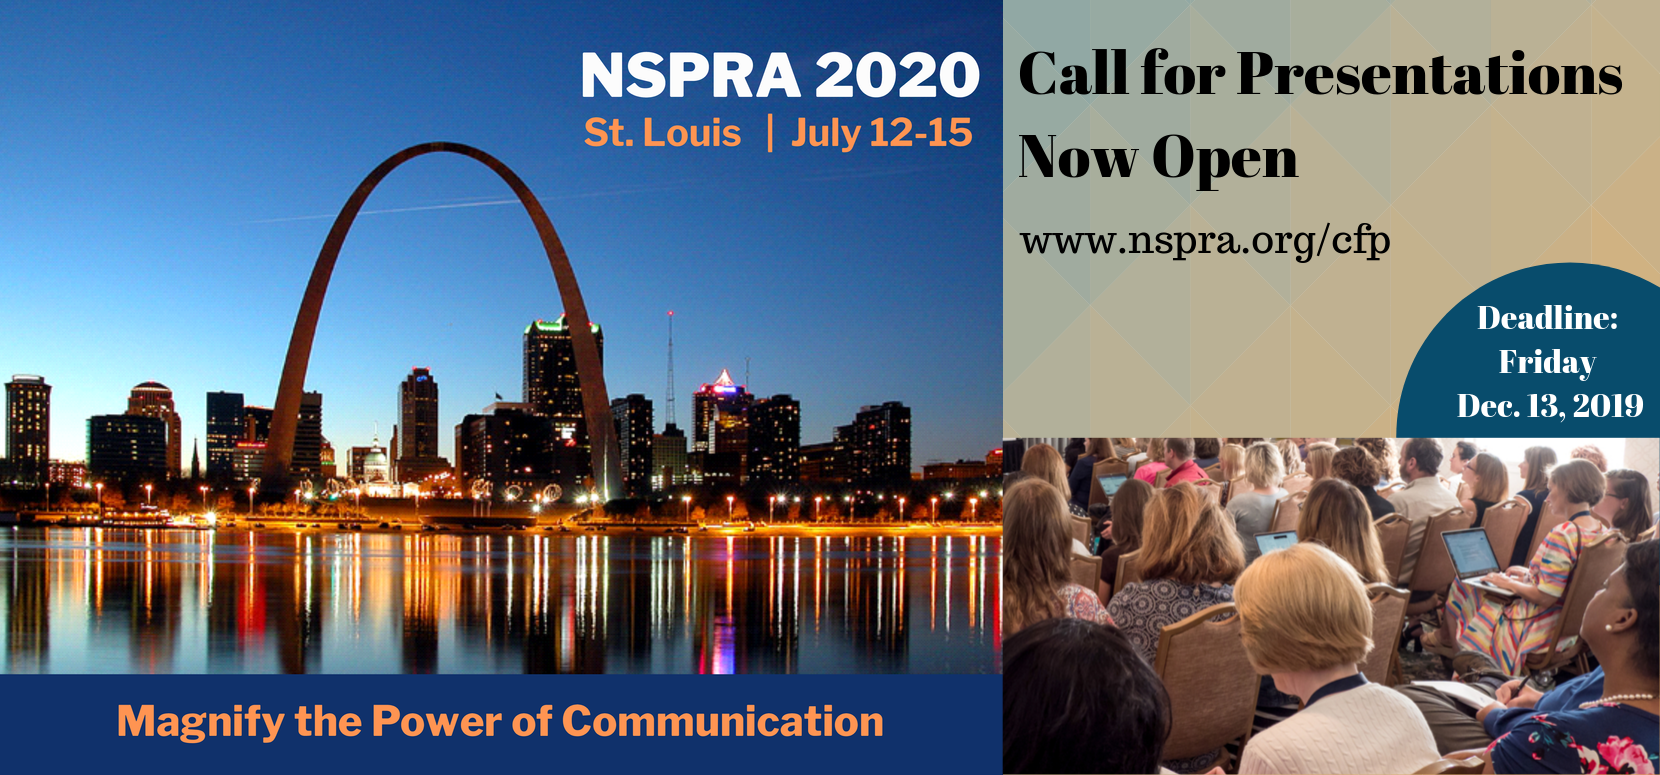 NSPRA 2020 Call for Presentations Now Open